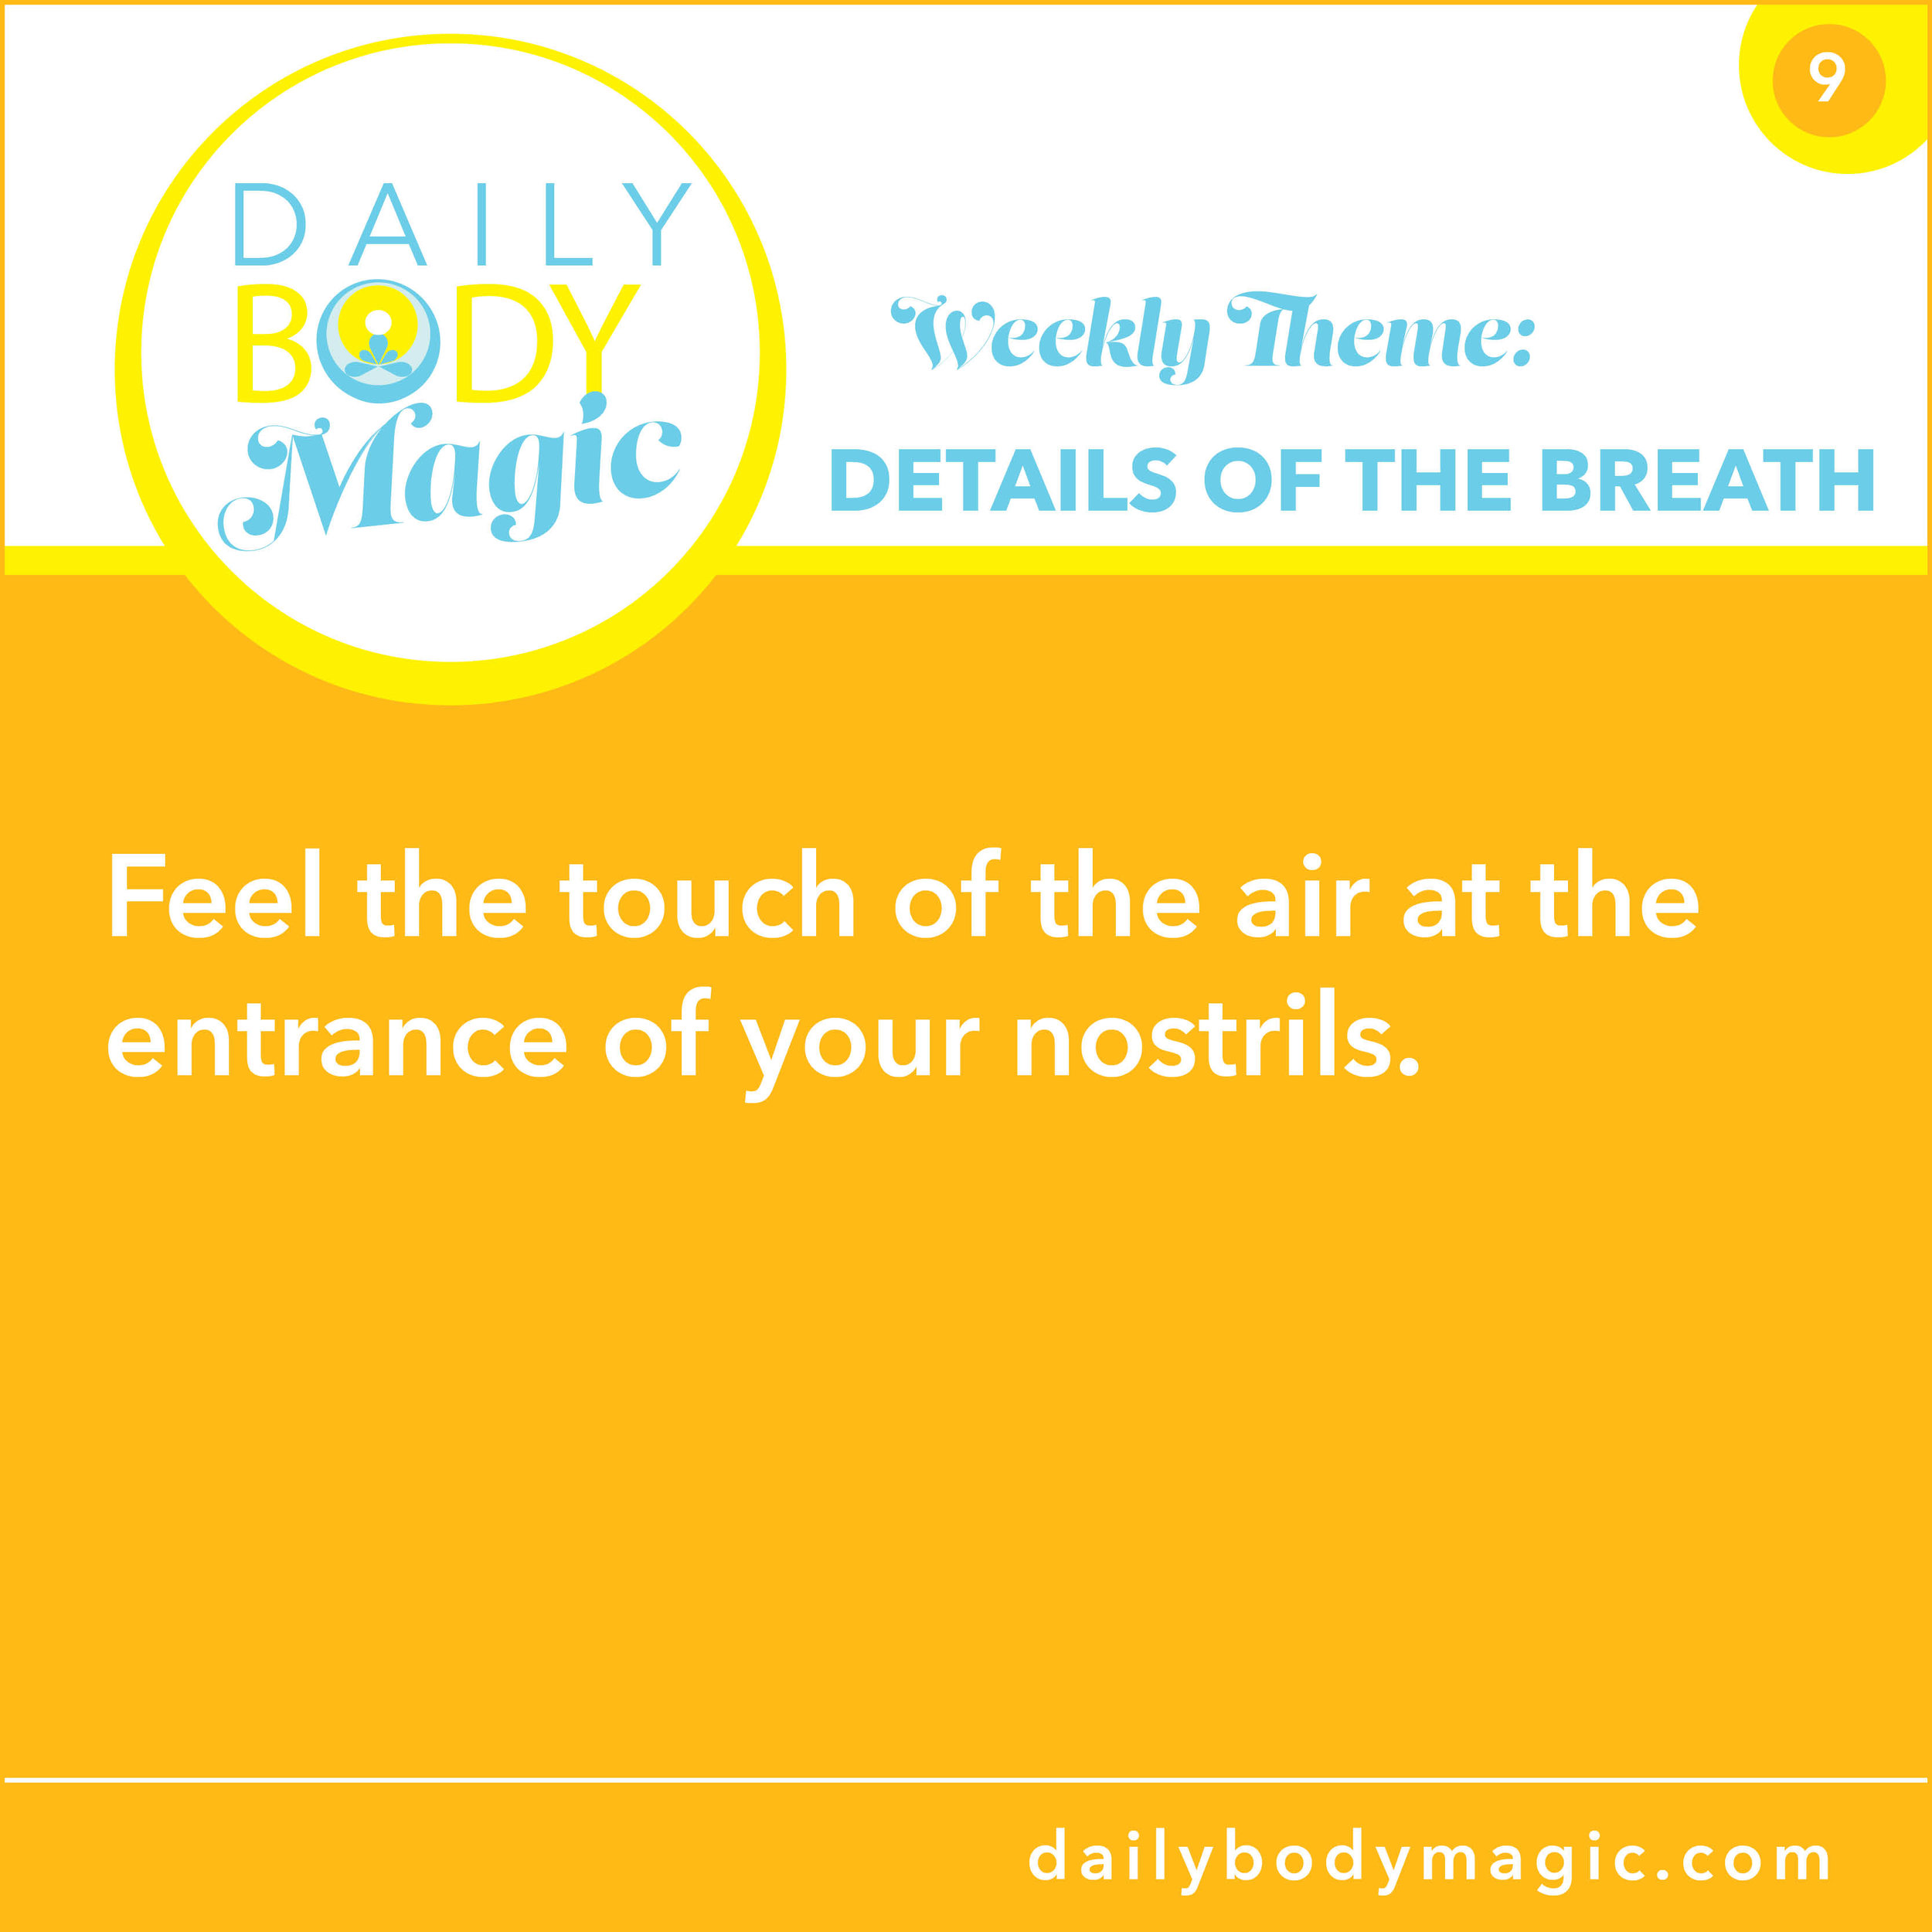 Daily Body Magic -9.jpg